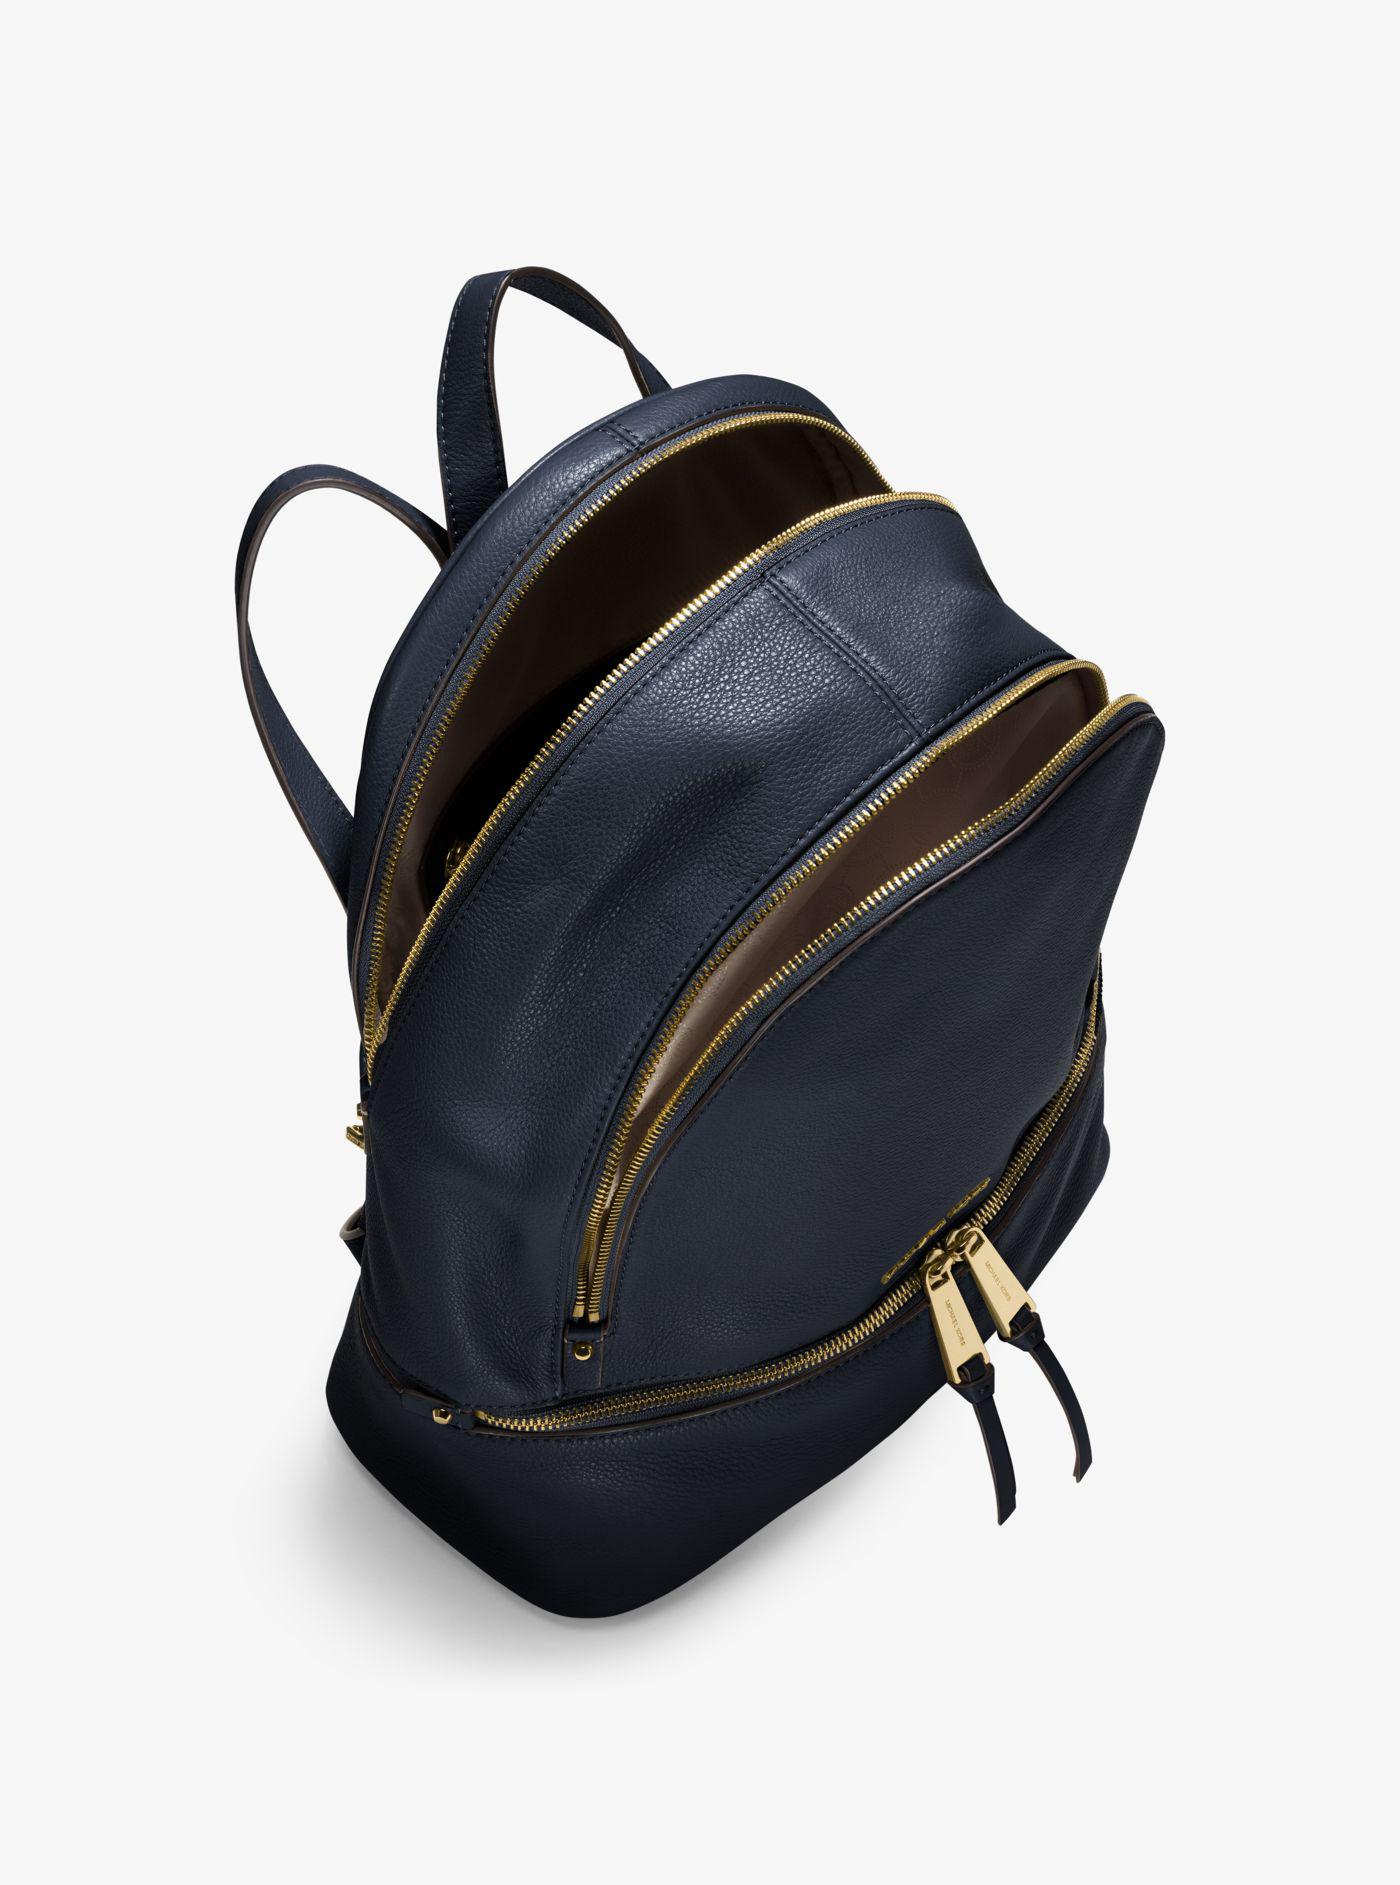 013a99a9f902 ... free shipping michael kors blue rhea large leather backpack lyst. view  fullscreen c1166 cebd4